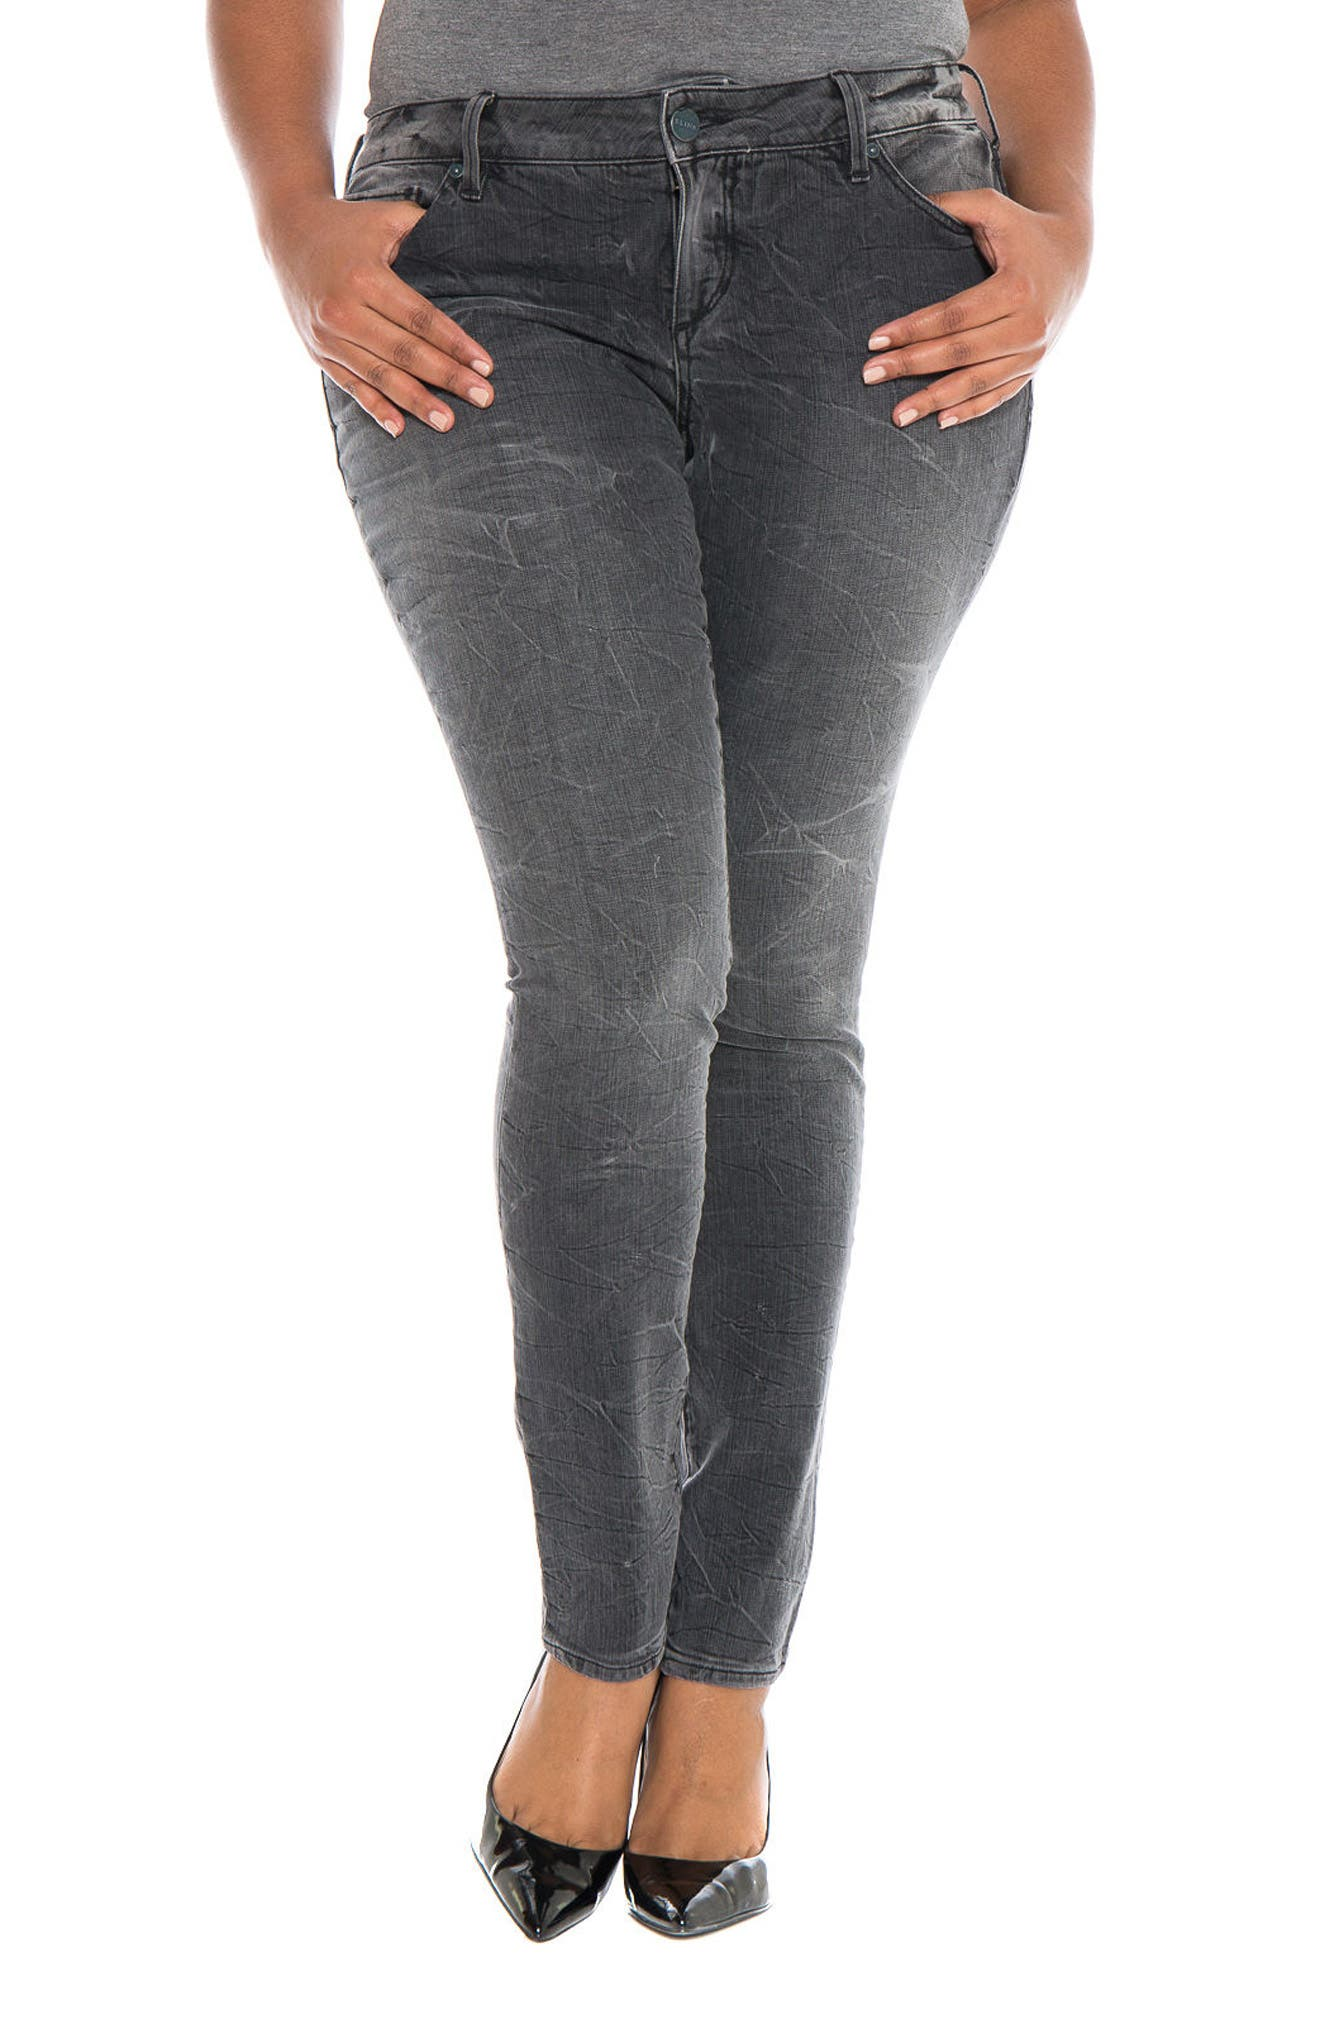 Main Image - SLINK Jeans Stretch Skinny Jeans (Caitlin) (Plus Size)